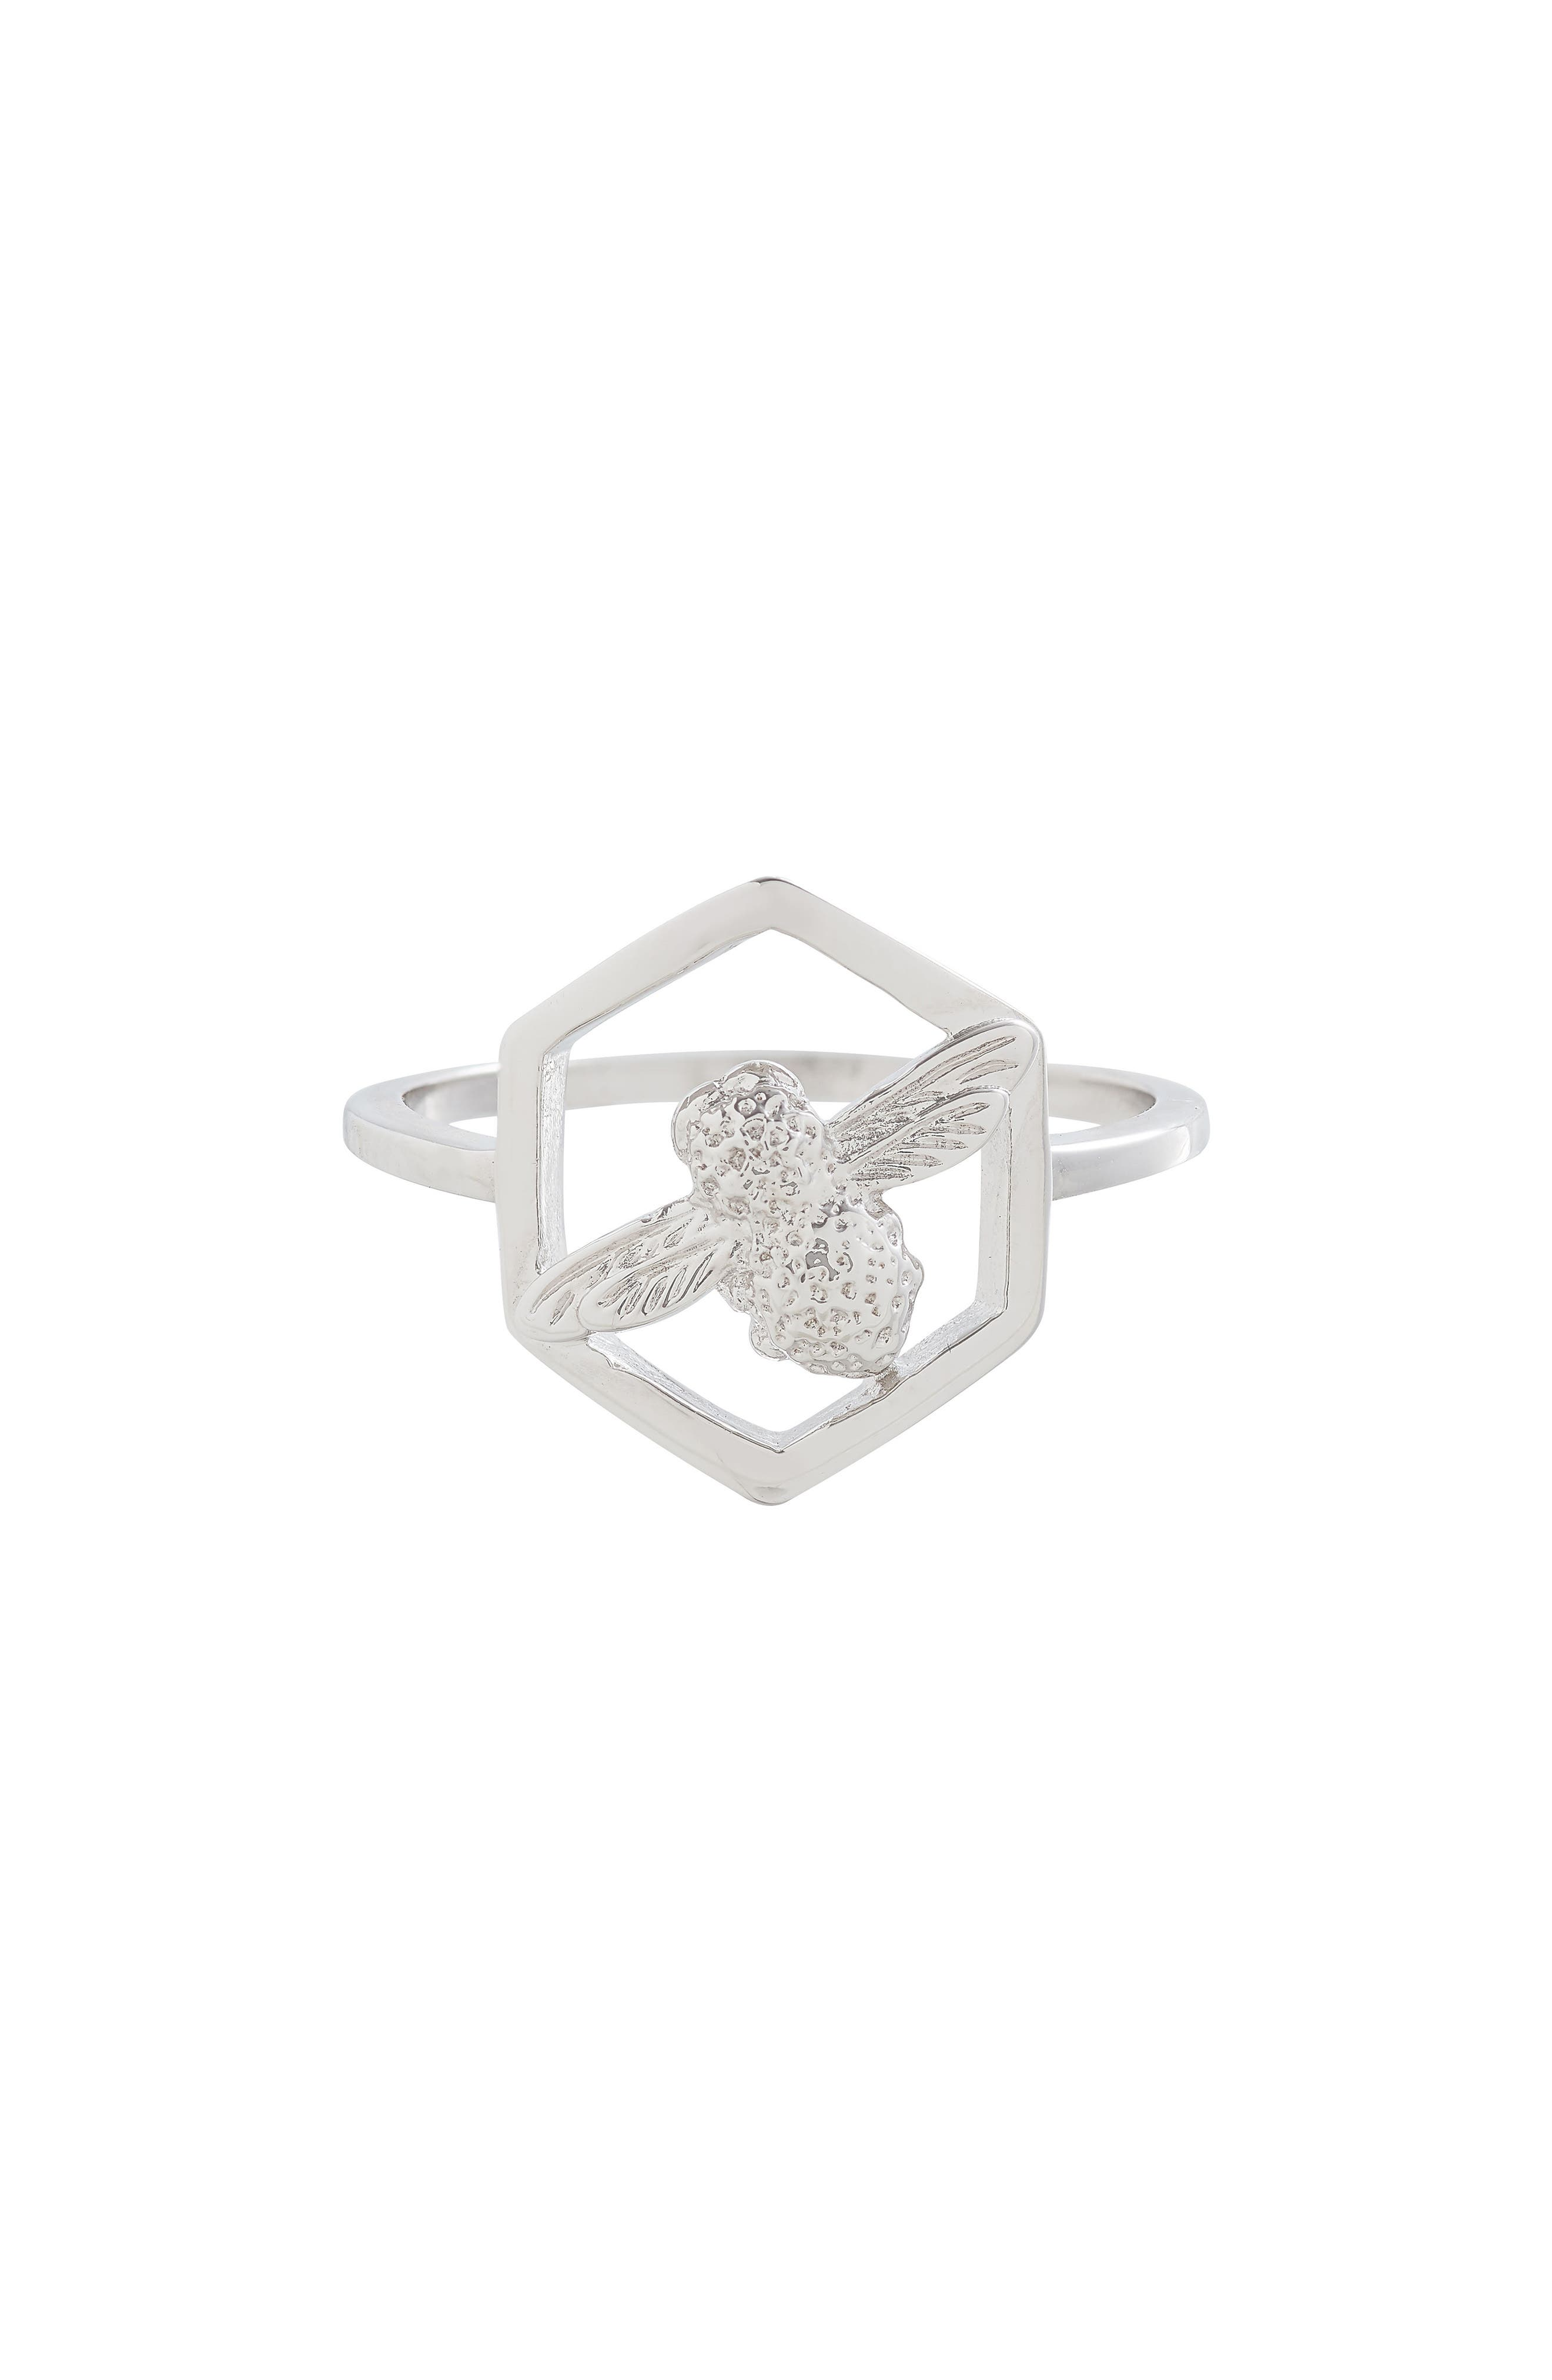 Honeycomb Bee Ring,                         Main,                         color, Silver